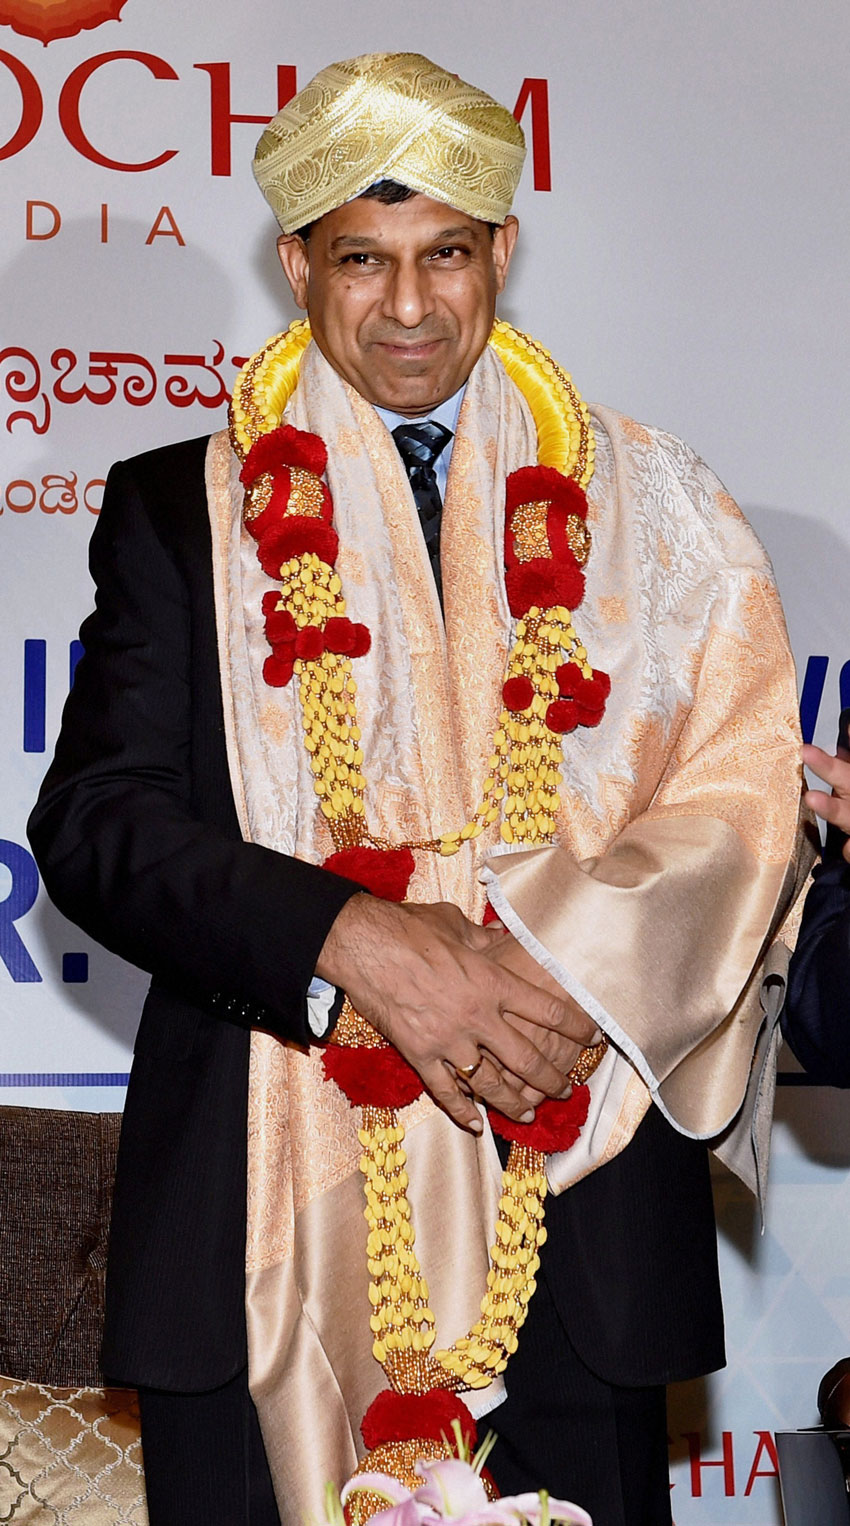 RBI Governor Dr. Raghuram Rajan wears a Mysore 'Peta' with garland and a shawl during an event organized by ASSOCHAM in Bengaluru, June 22. (Shailendra Bhojak | PTI)